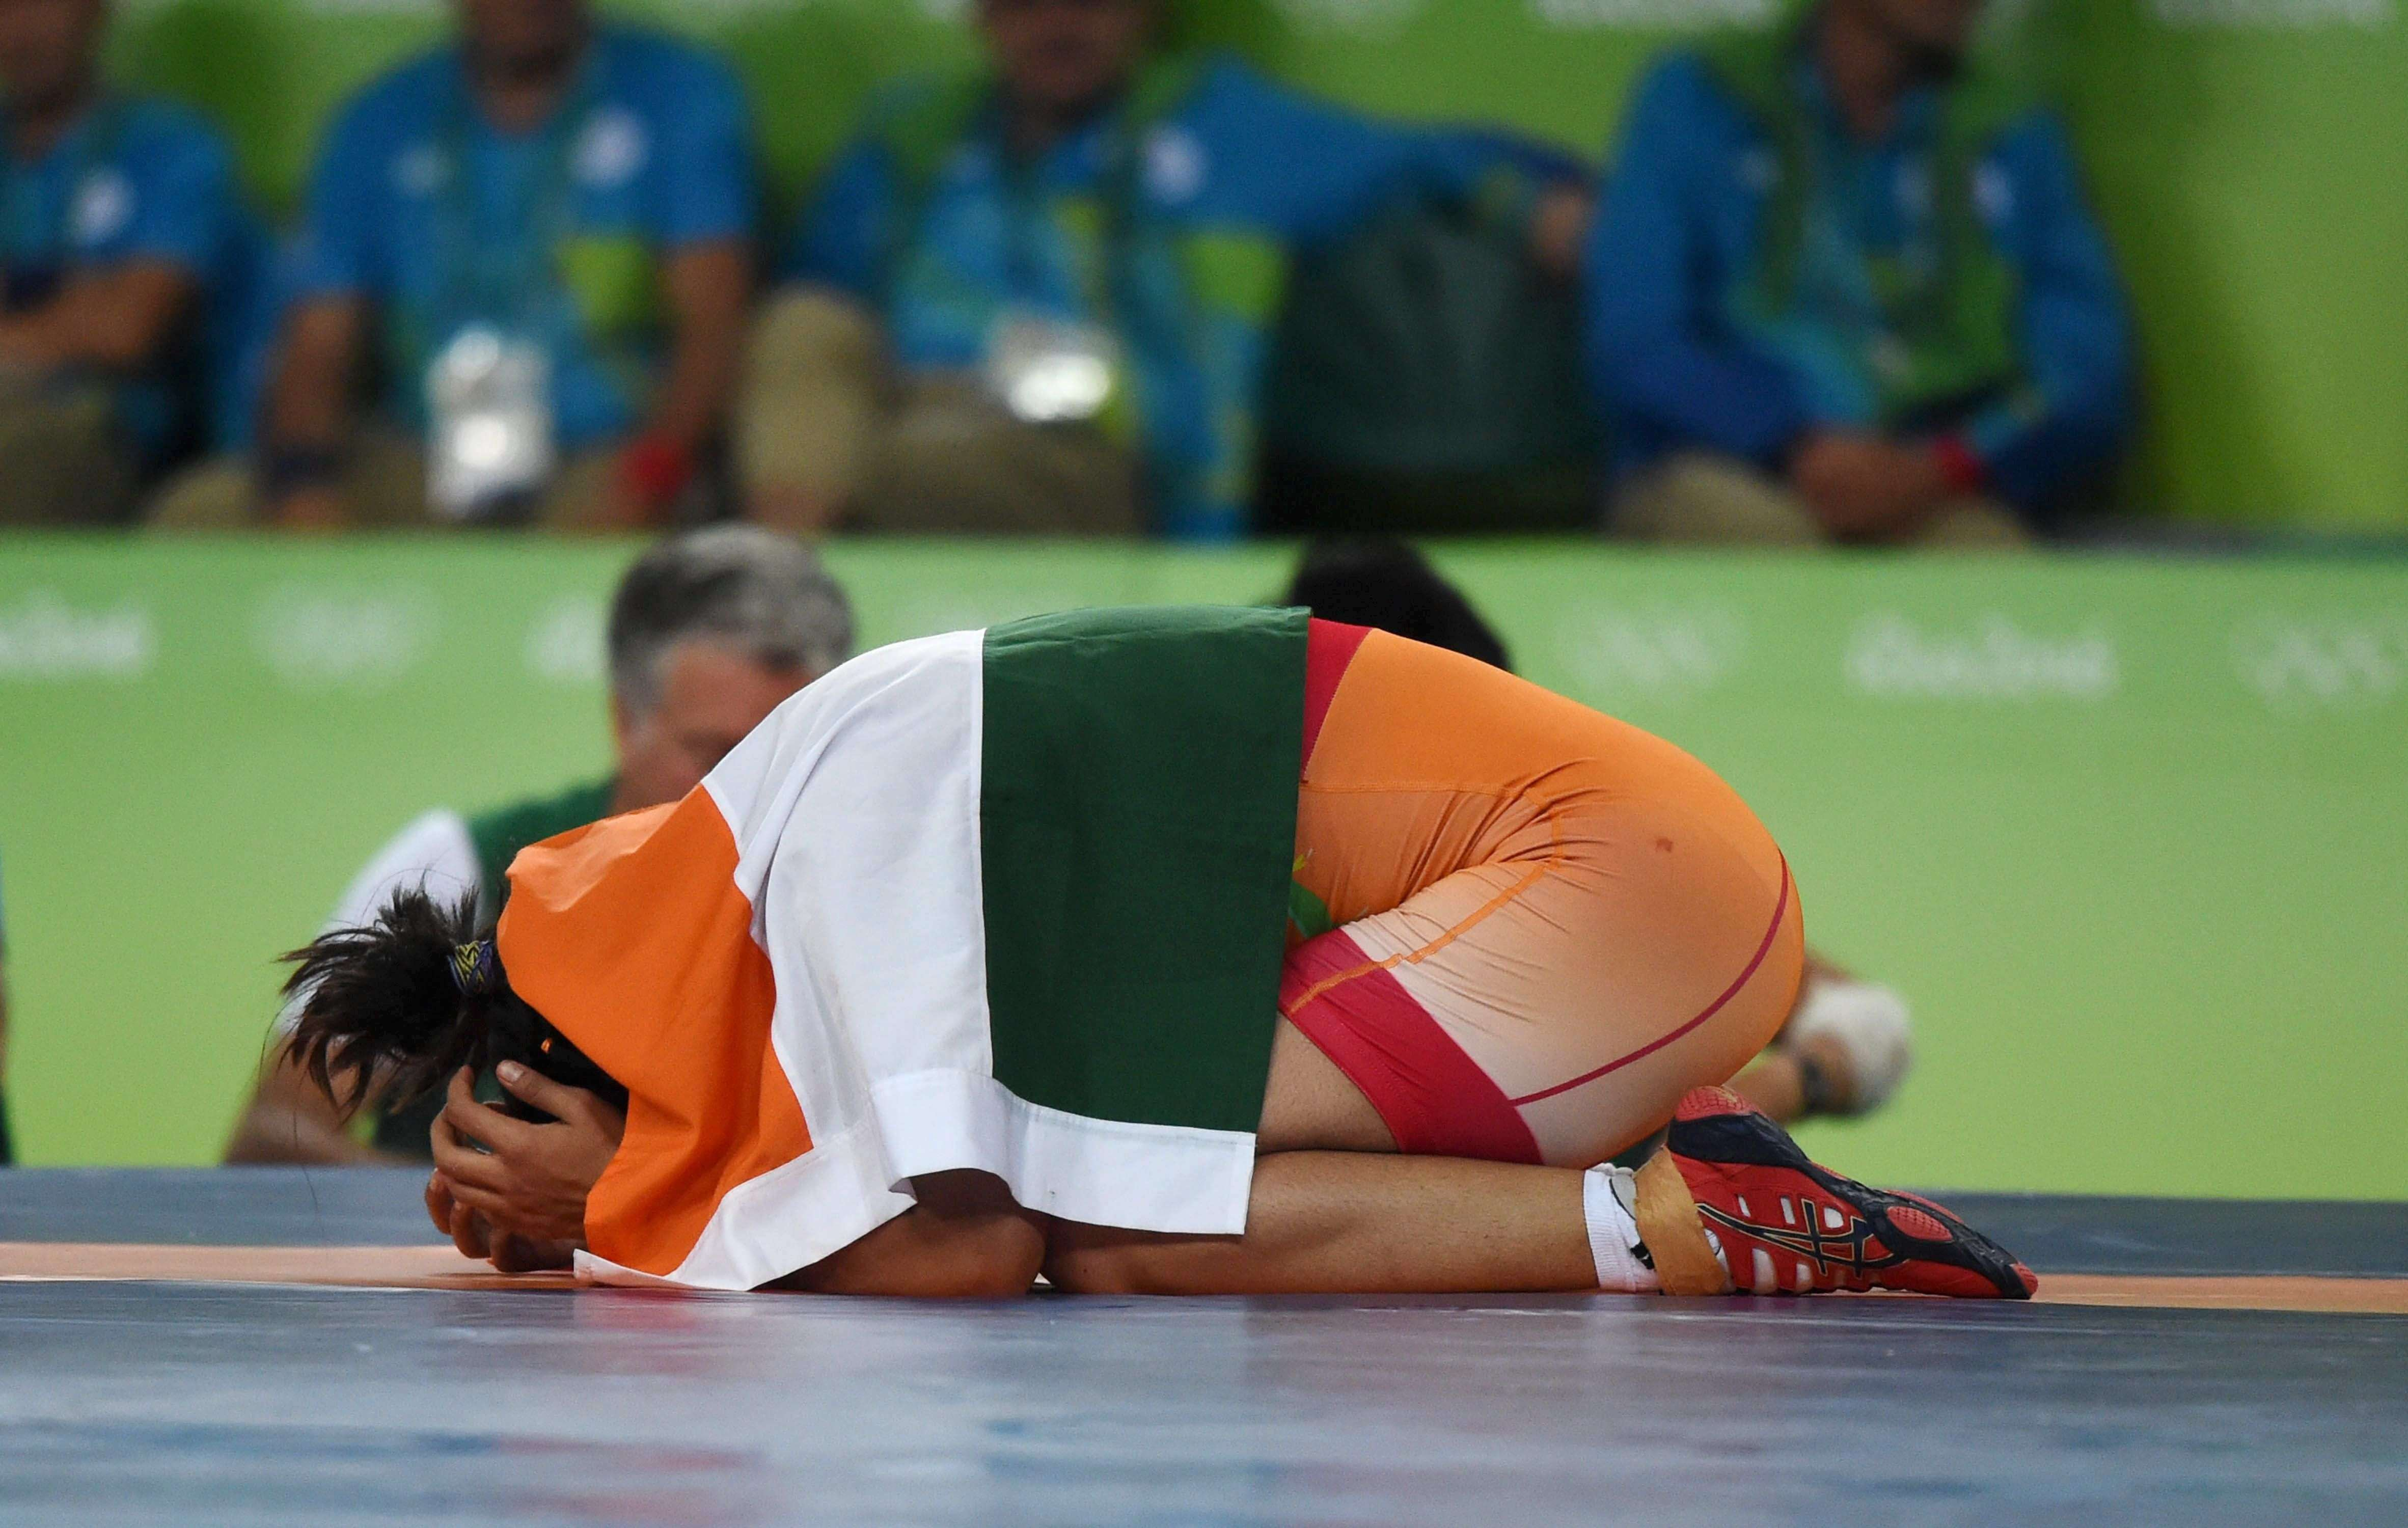 Rio de Janeiro: India's Sakshi Malik celebrates after winning bronze against Kyrgyzstan's Aisuluu Tynybekova in the women's wrestling freestyle 58-kg competition, at the 2016 Summer Olympics in Rio de Janeiro, Brazil on Wednesday. PTI Photo by Atul Yadav(PTI8_18_2016_000086B)